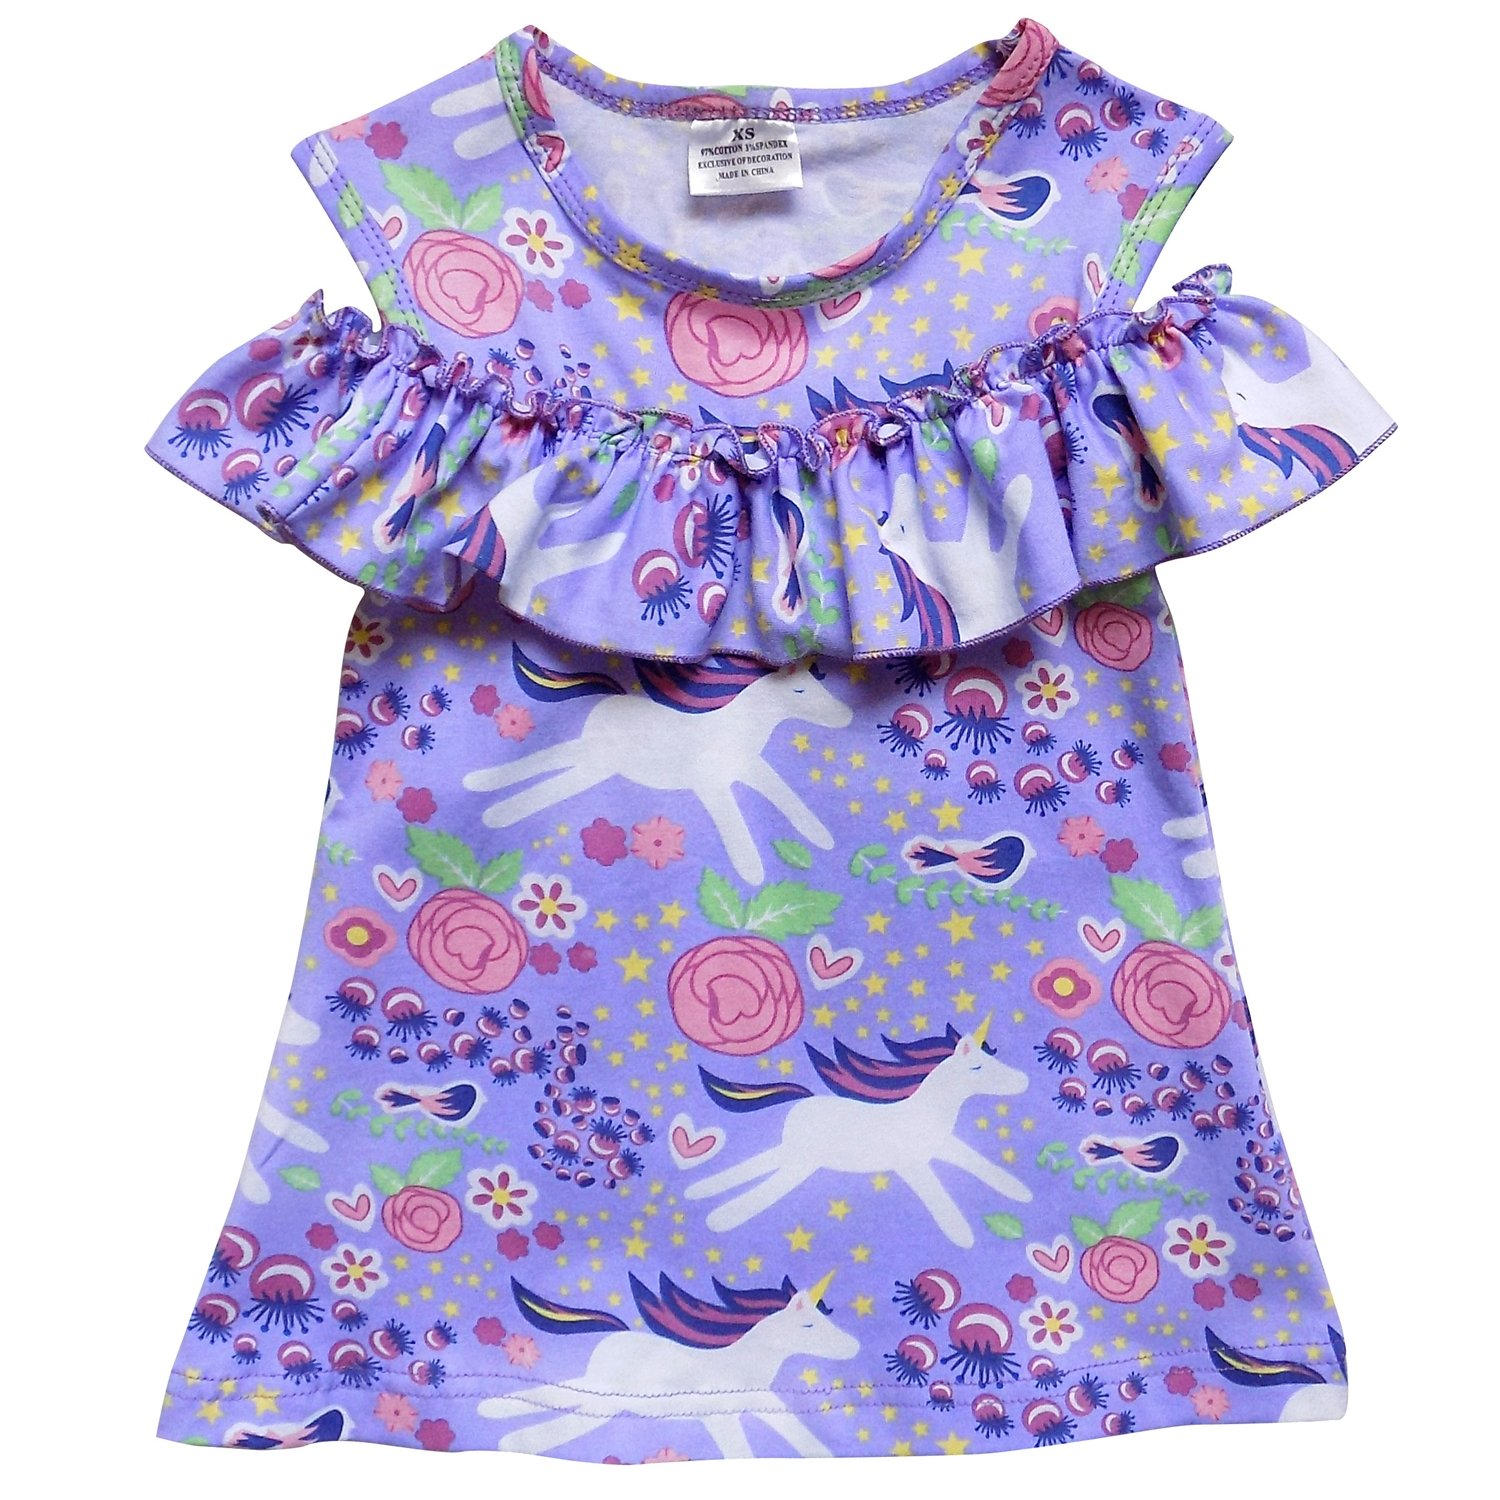 9954c0882f100 Stretch cotton dress with off the shoulder ruffle trim. Cute trendy look  that little girls love! Perfect for spring and summer parties and pictures,  ...